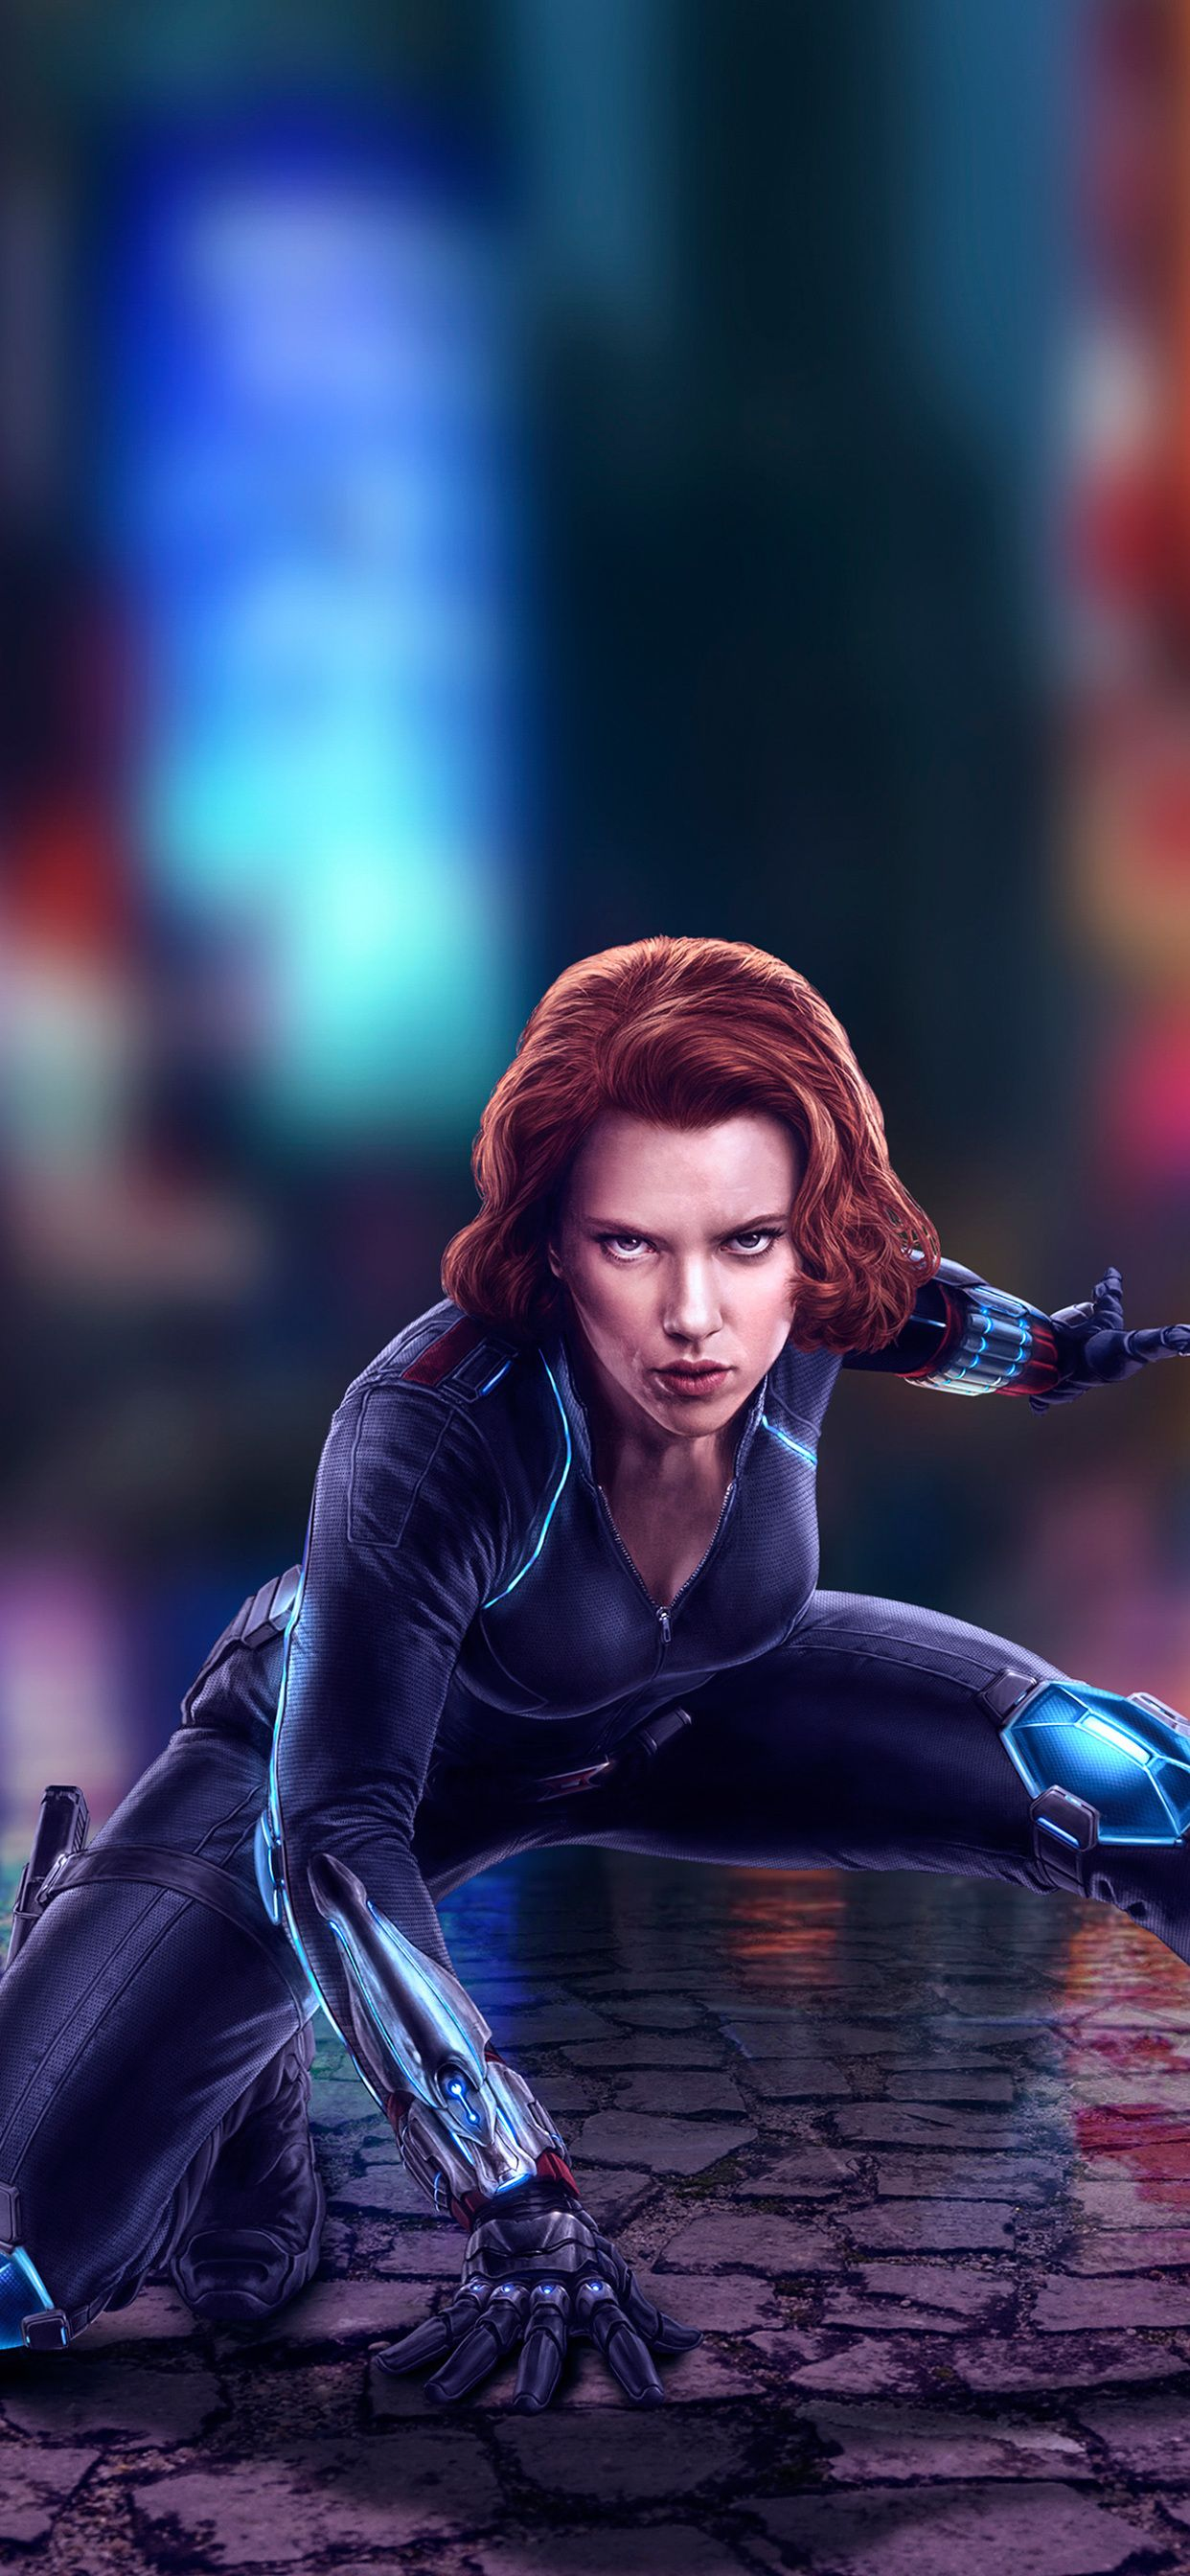 1242x2688 Black Widow 4k Iphone Xs Max Hd 4k Wallpapers Images